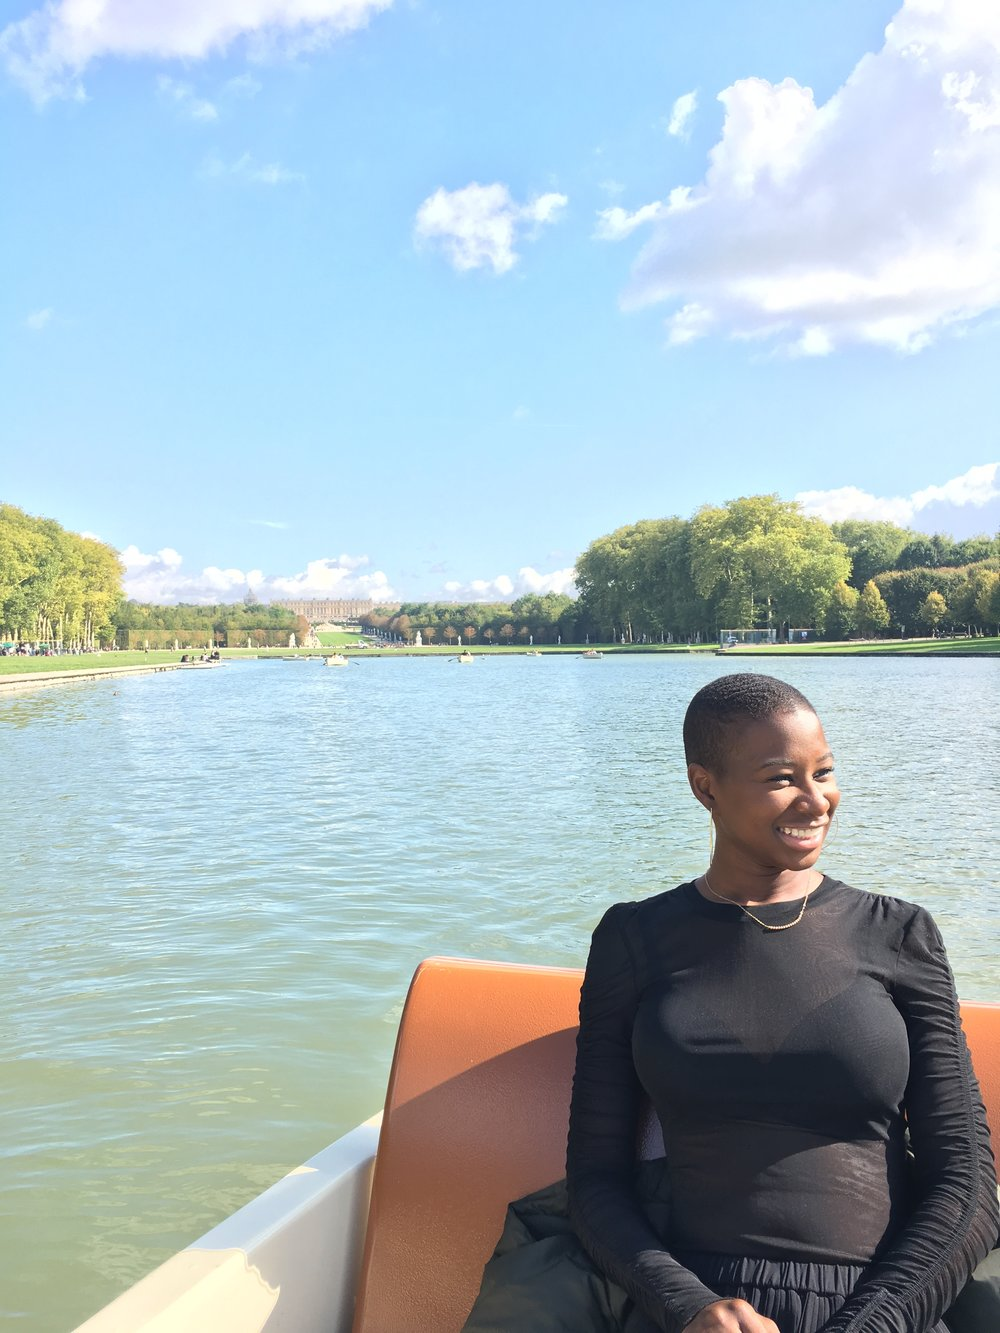 Samantha on the Versailles canal.